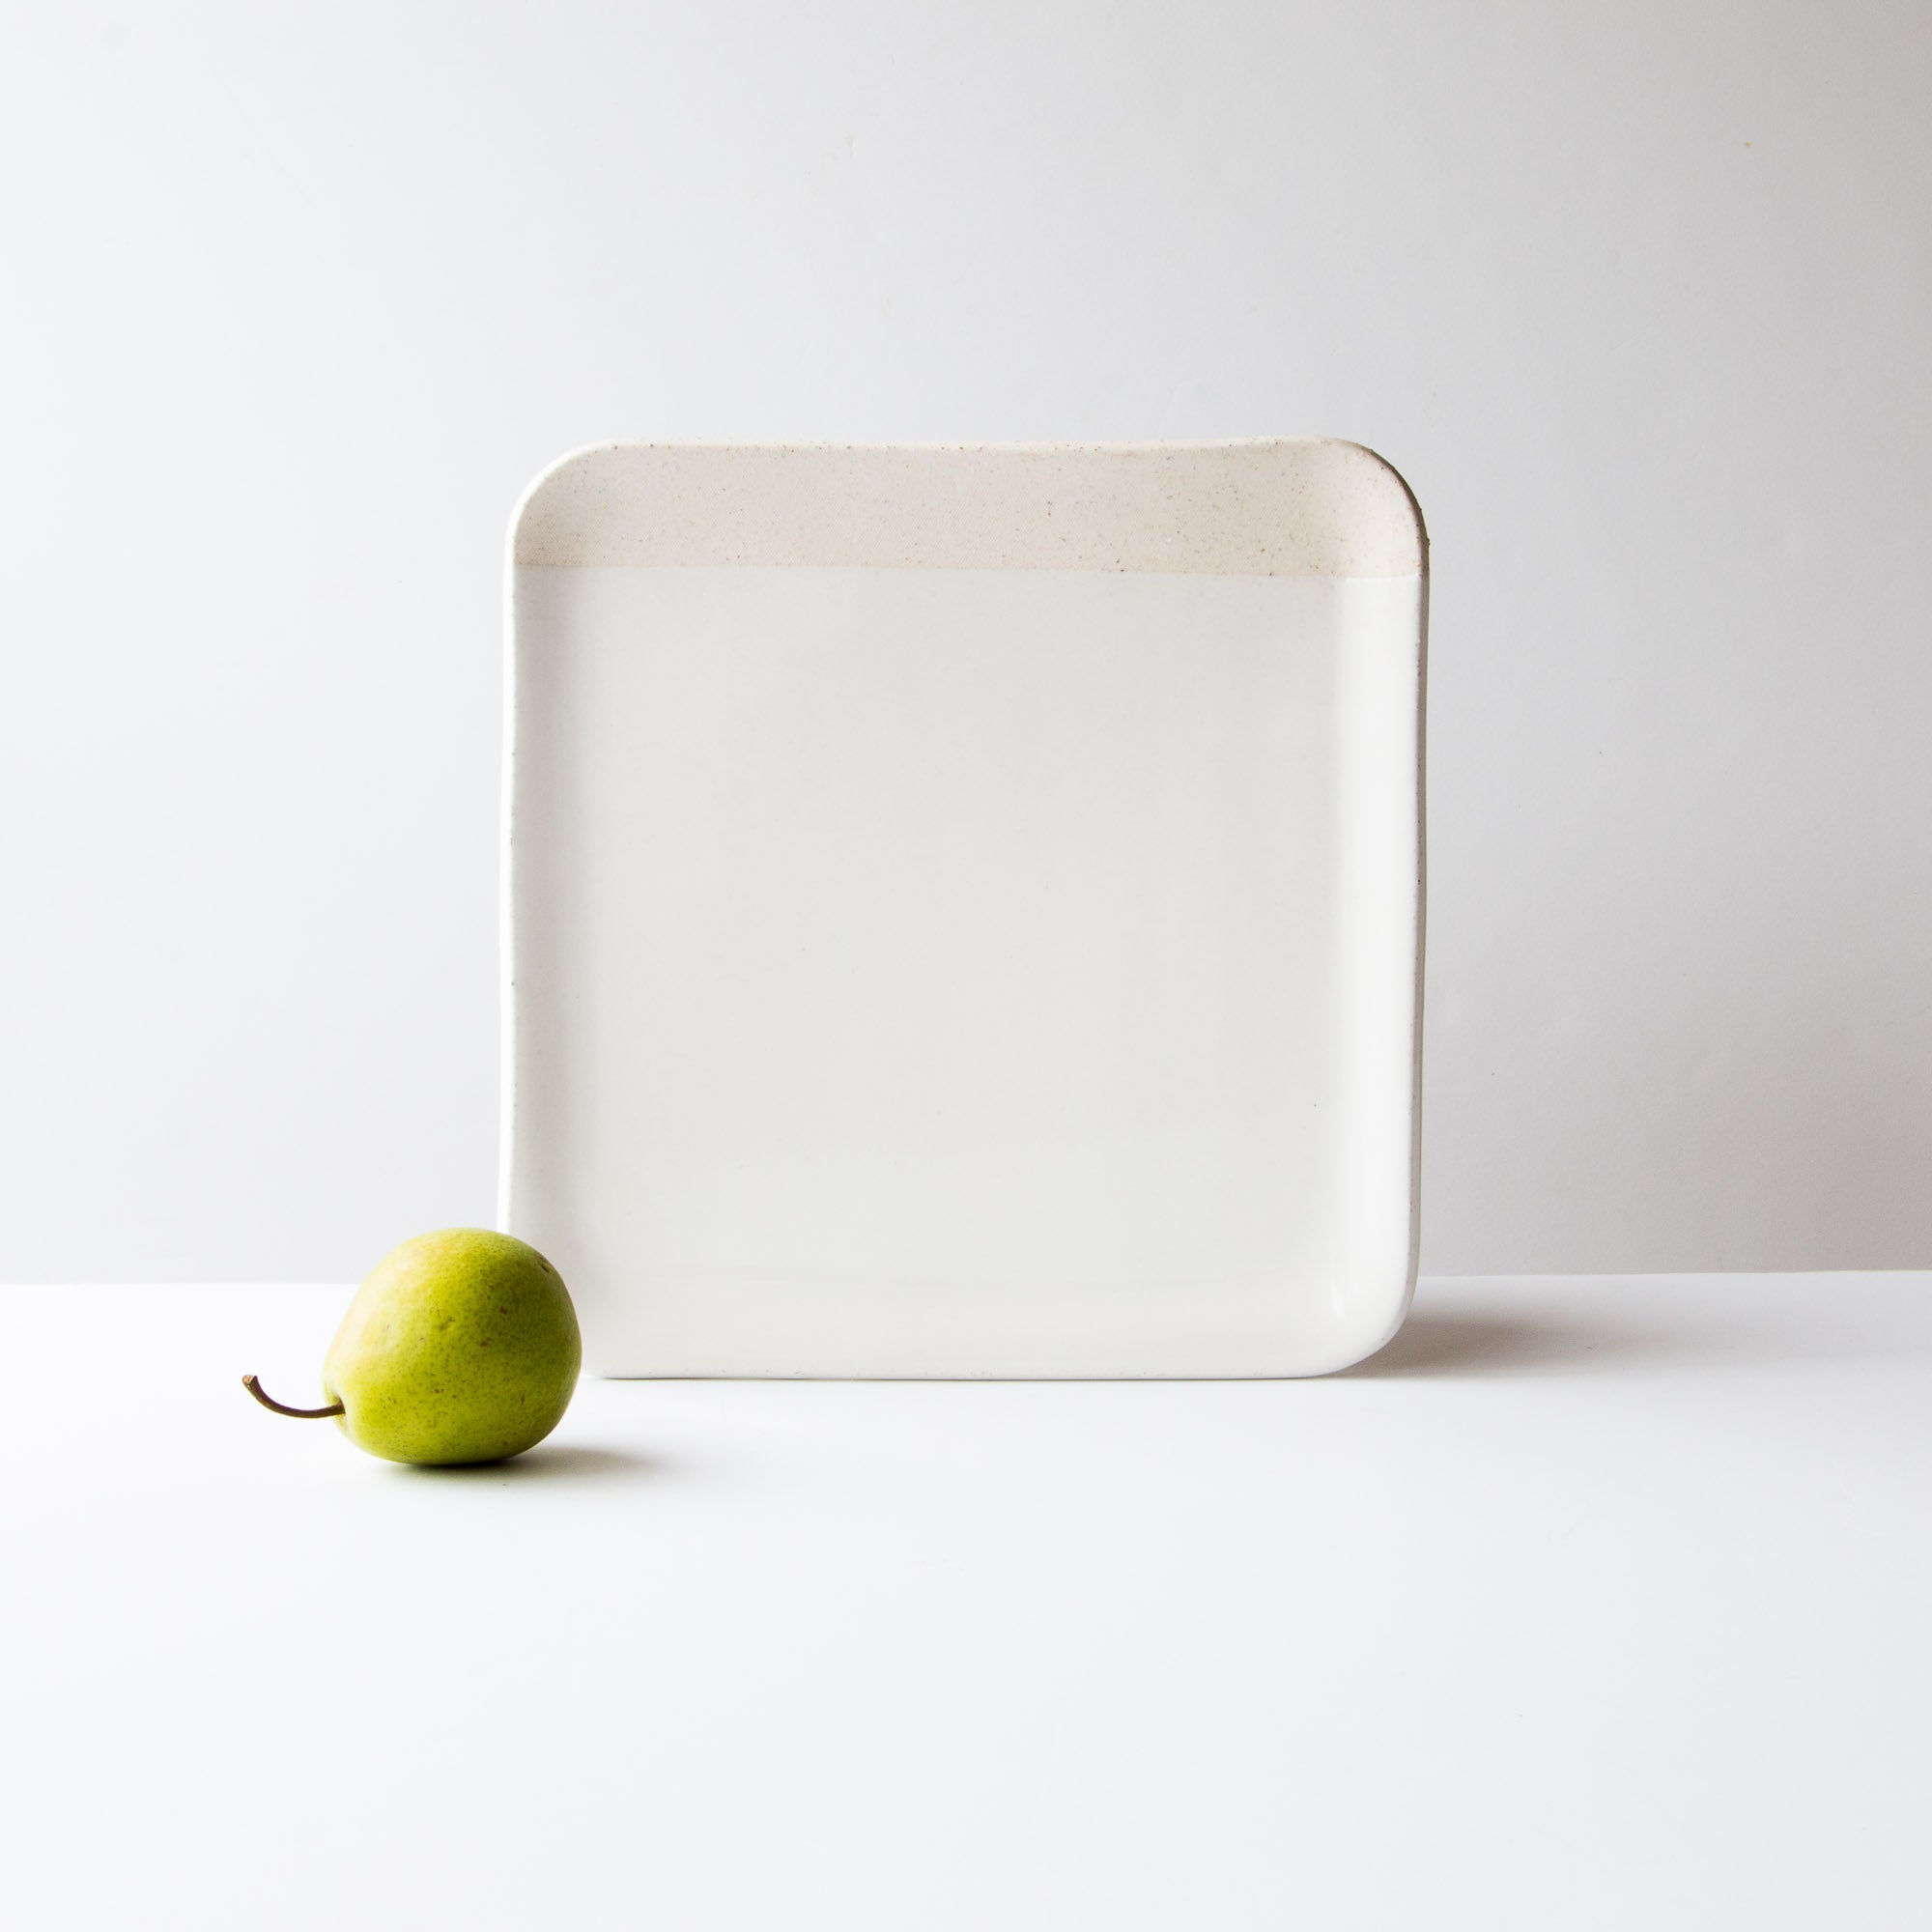 Grey Clay - Creamy White Glaze - Handmade Small Ceramic Square Serving Board